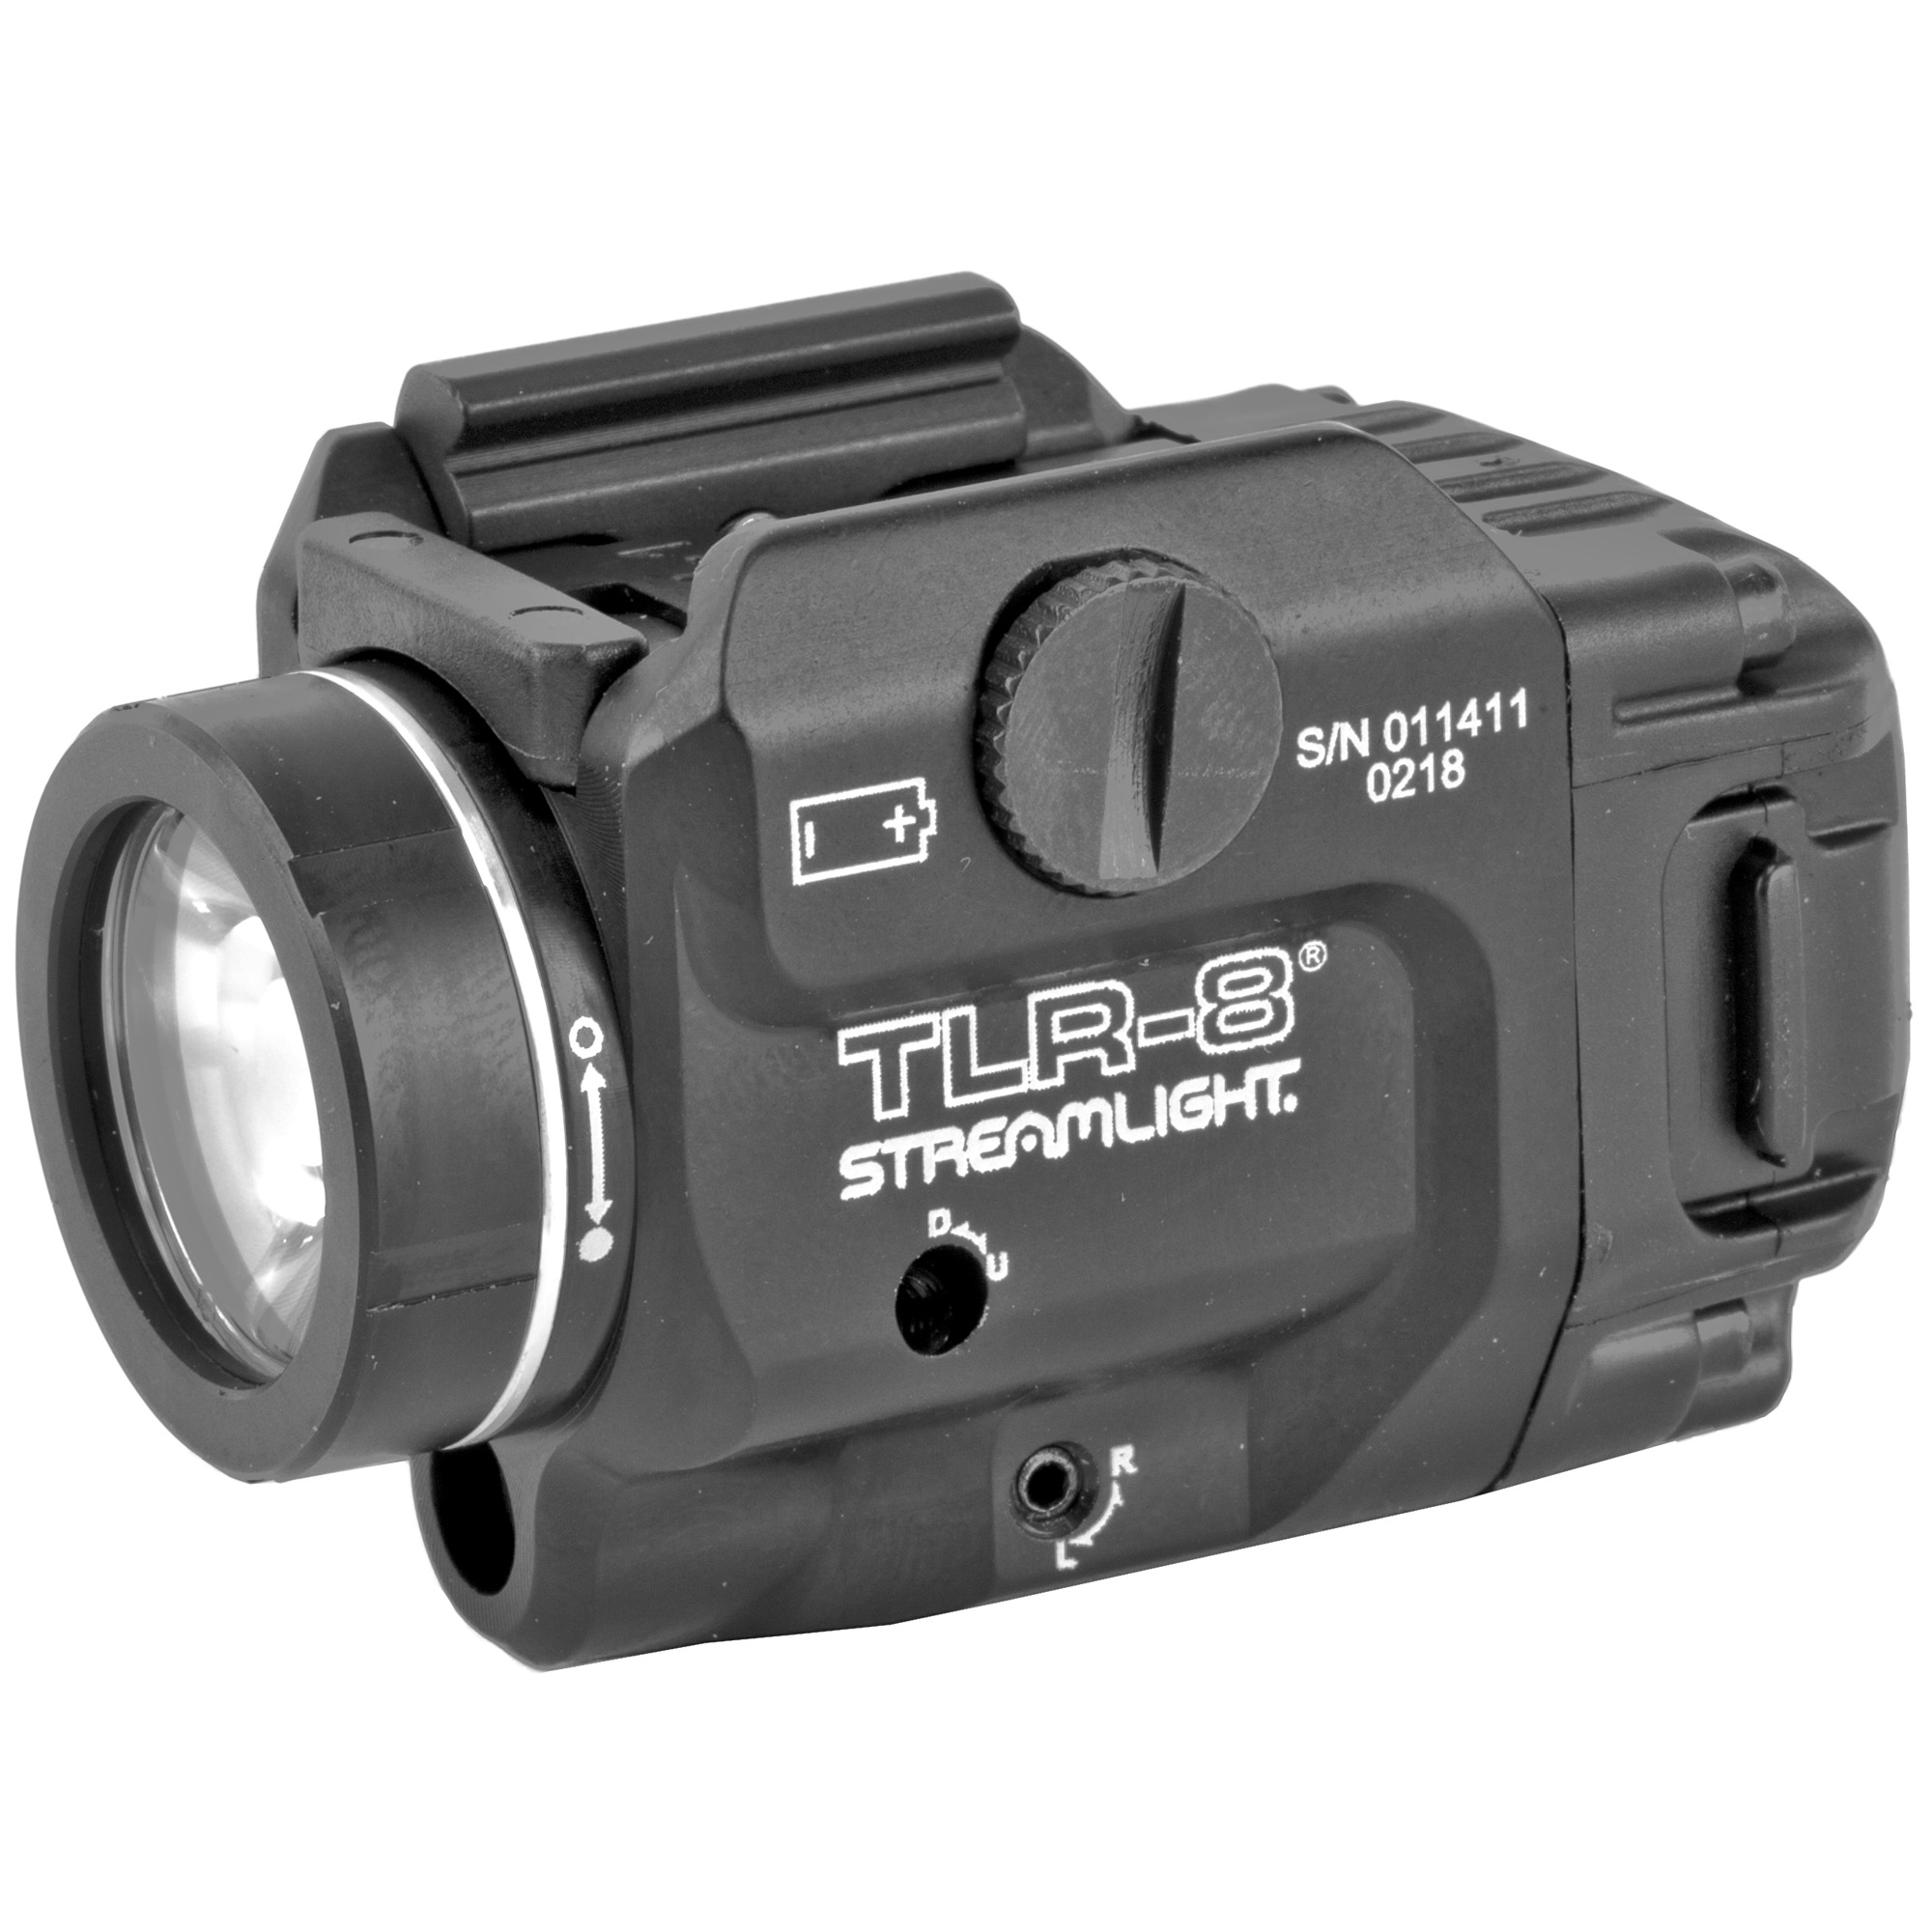 Streamlight TLR-8 Compact Weapon Light/Laser Combo 500 Lumen LED White Light/Red Laser